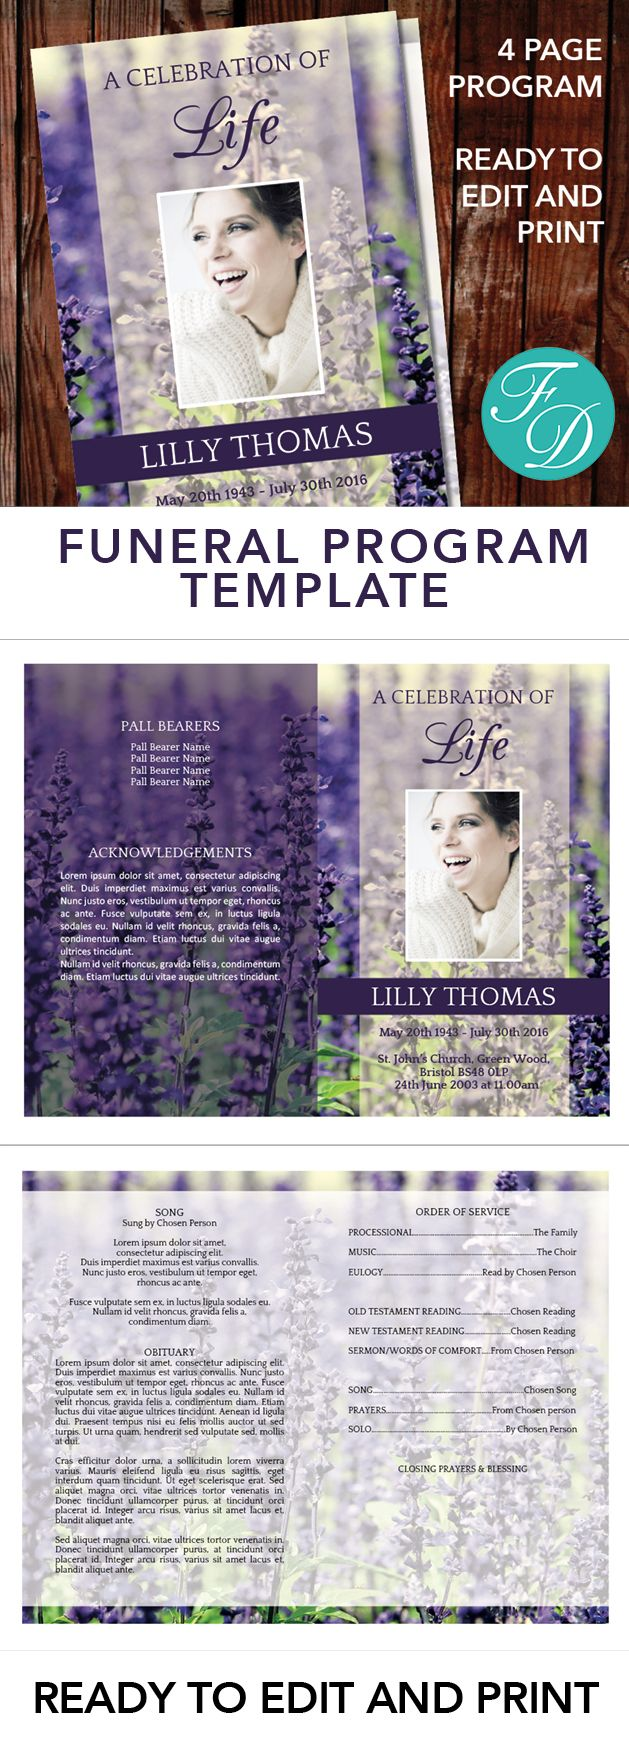 Lavender Printable Funeral program ready to edit & print. Simply purchase your funeral templates, download, edit with Microsoft Word and print. #obituarytemplate #memorialprogram #funeralprograms #funeraltemplate #printableprogram #celebrationoflife #funeralprogamtemplates